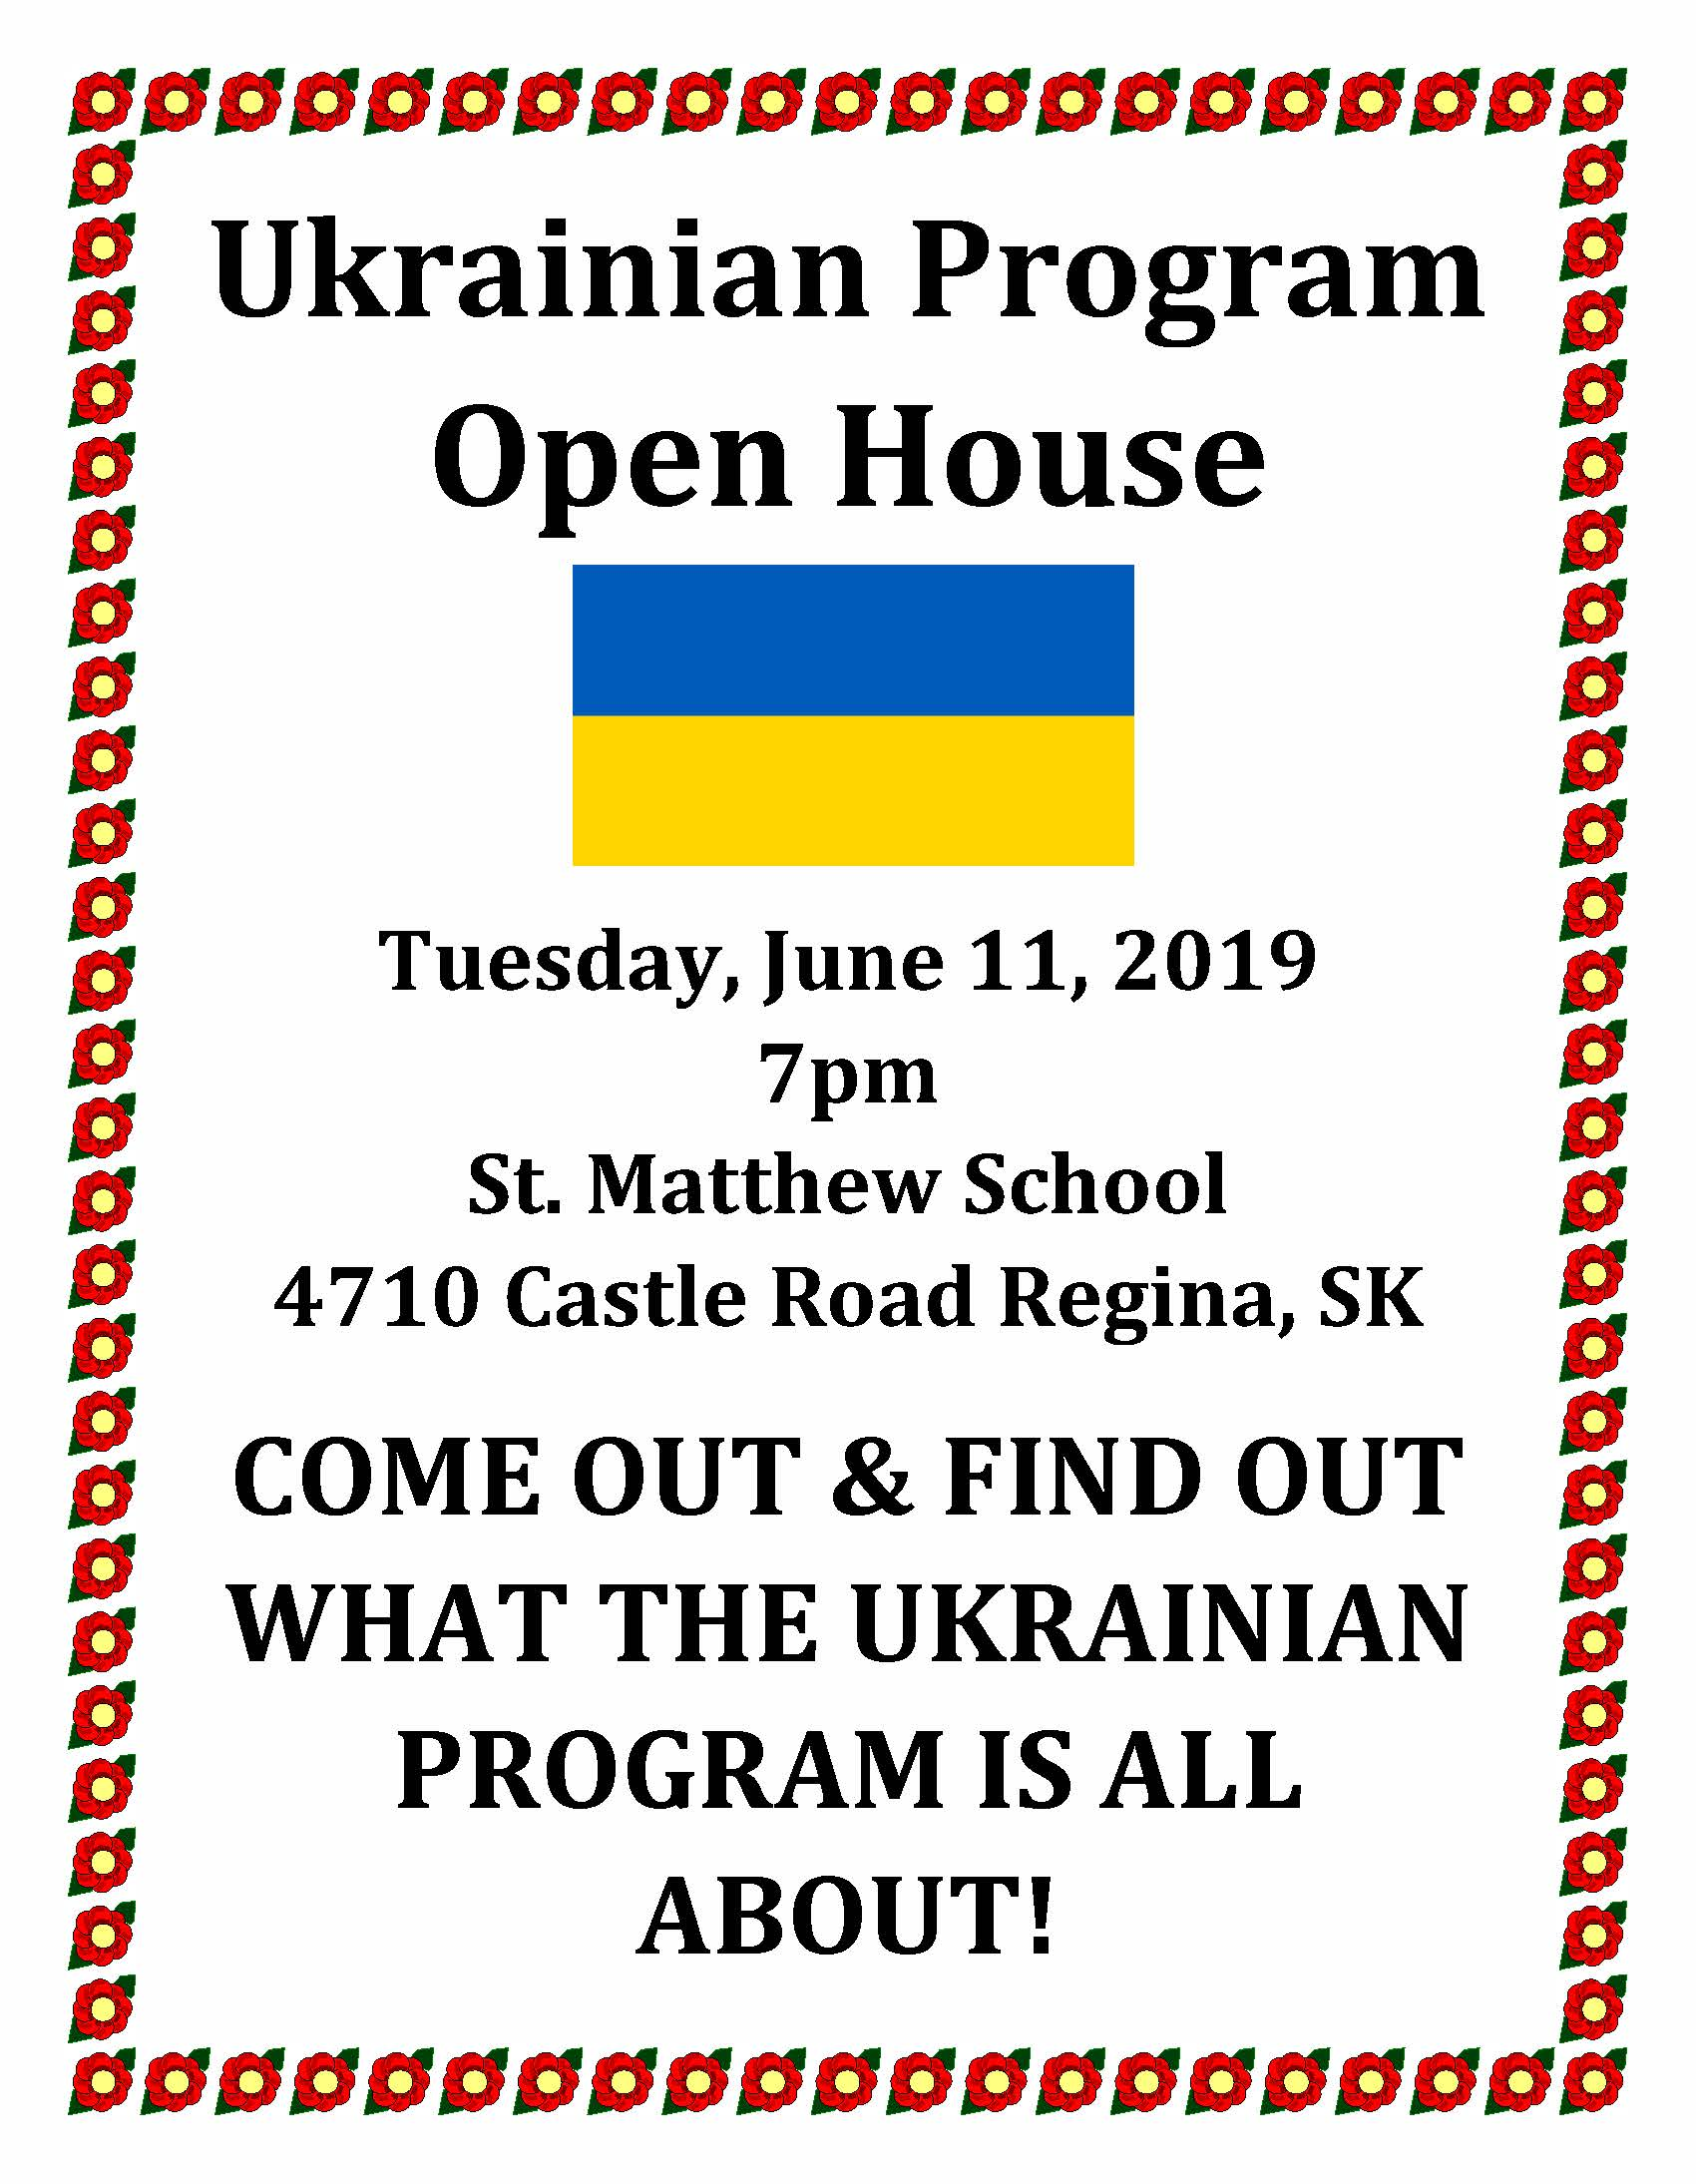 Ukrainian Program Open House Poster7226.jpg